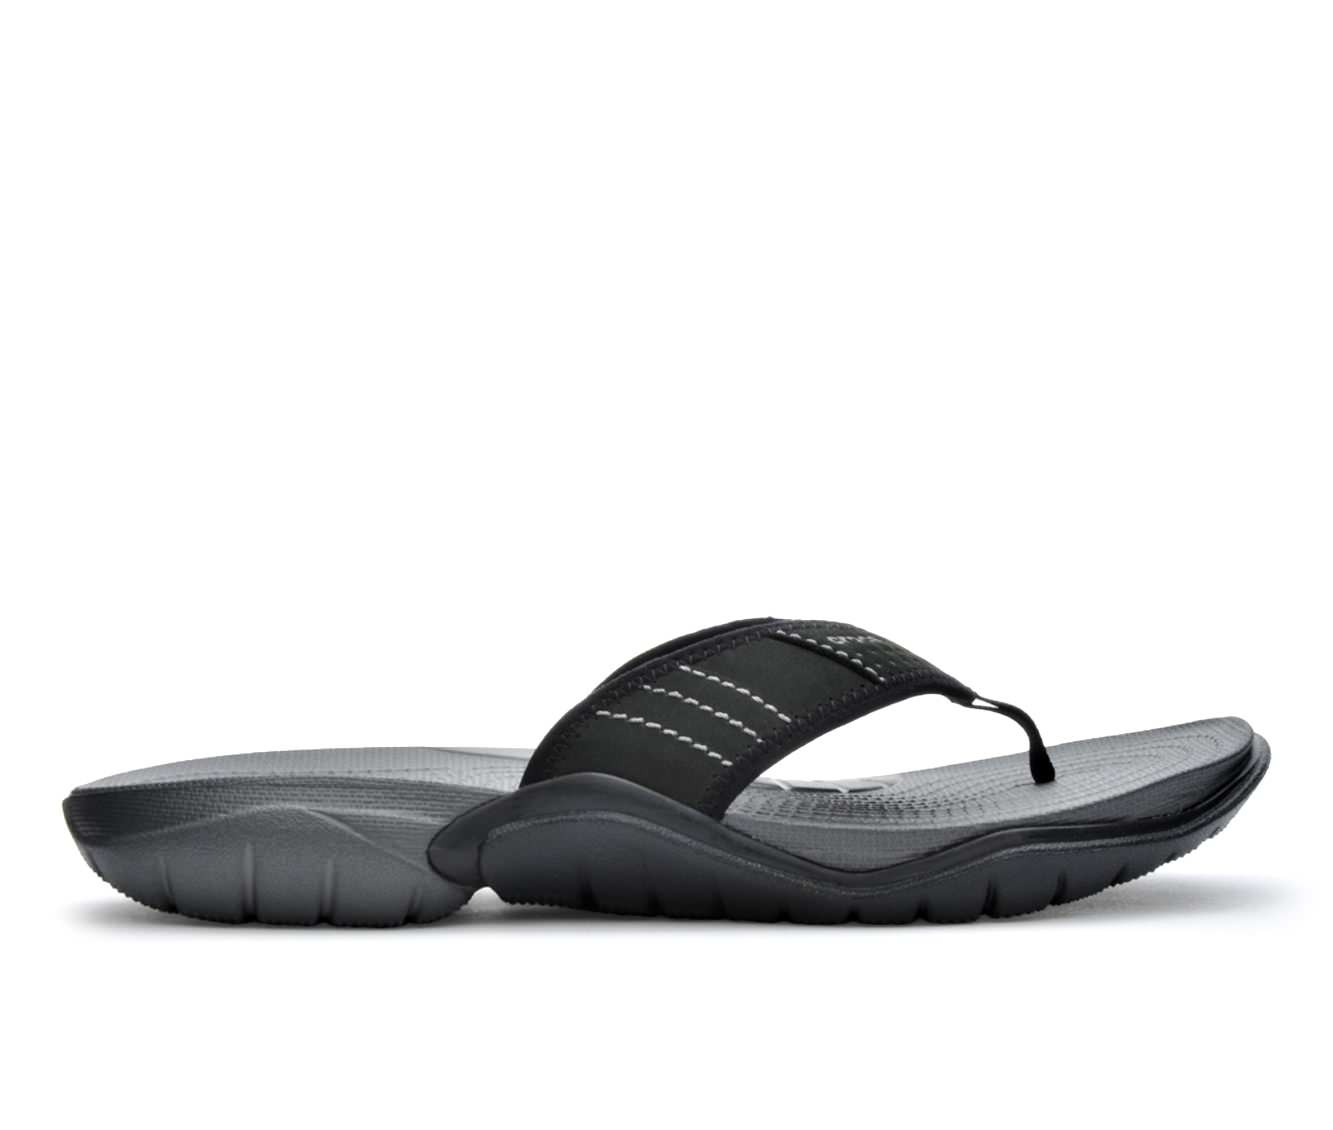 Men's Crocs Swiftwater Flip Sandals (Black)